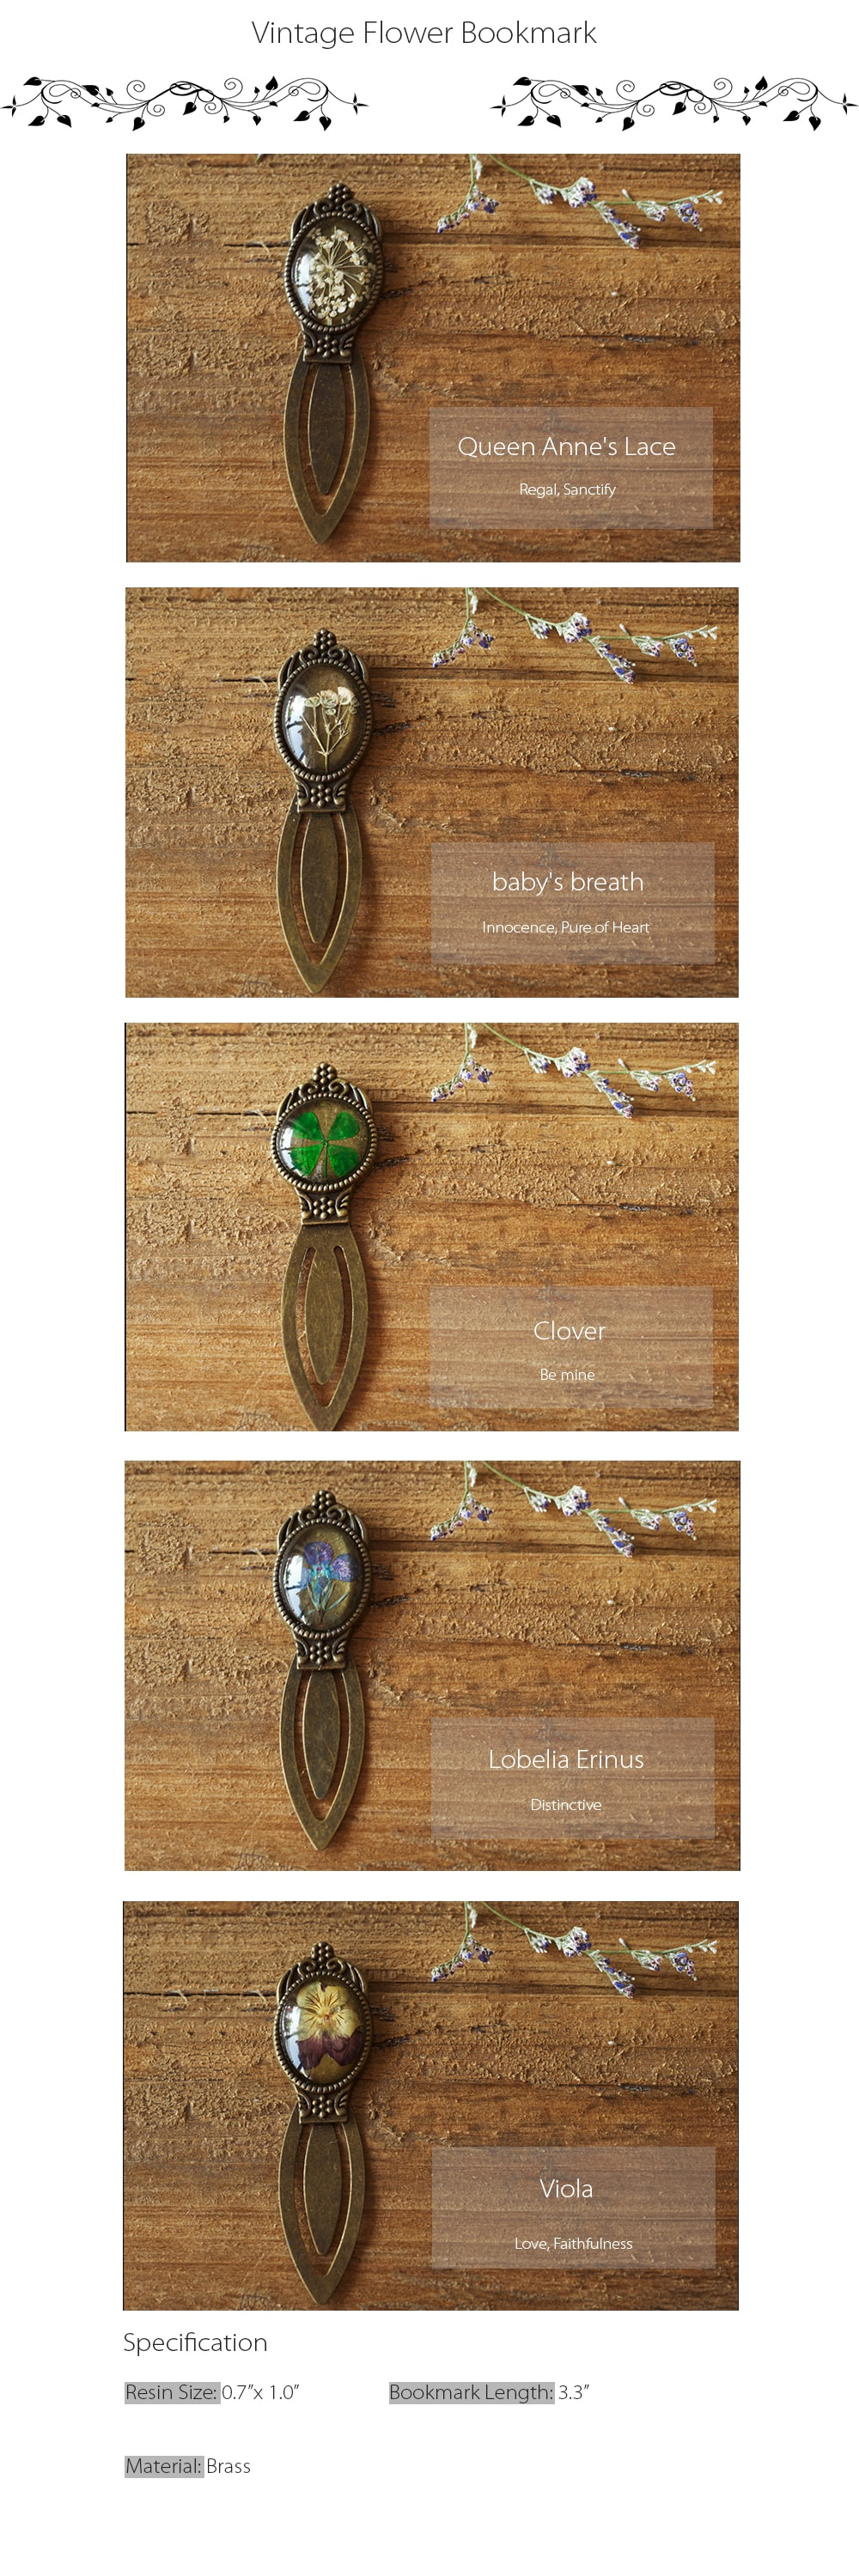 Vintage Flower Bookmark A Perfect Gift For Book Lovers